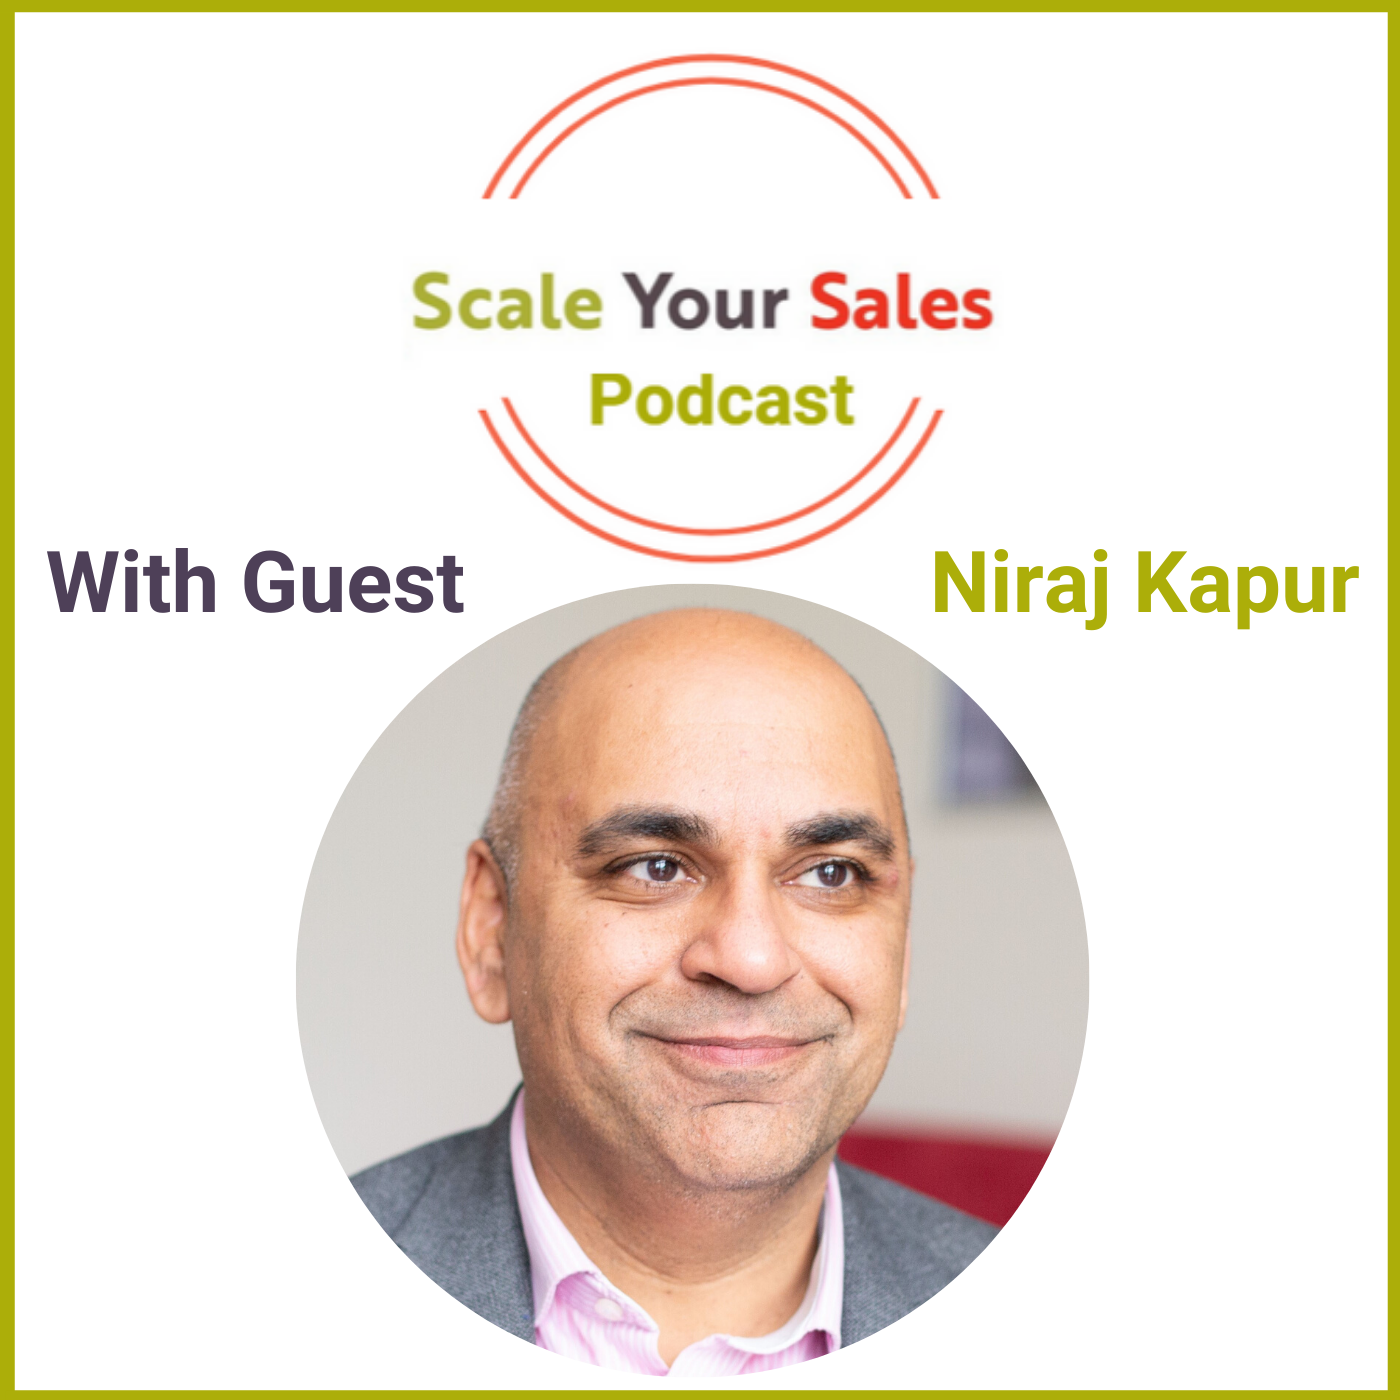 Episode 010 - Niraj Kapur How Salespeople Become Irrelevant & Why Integrity is Critical